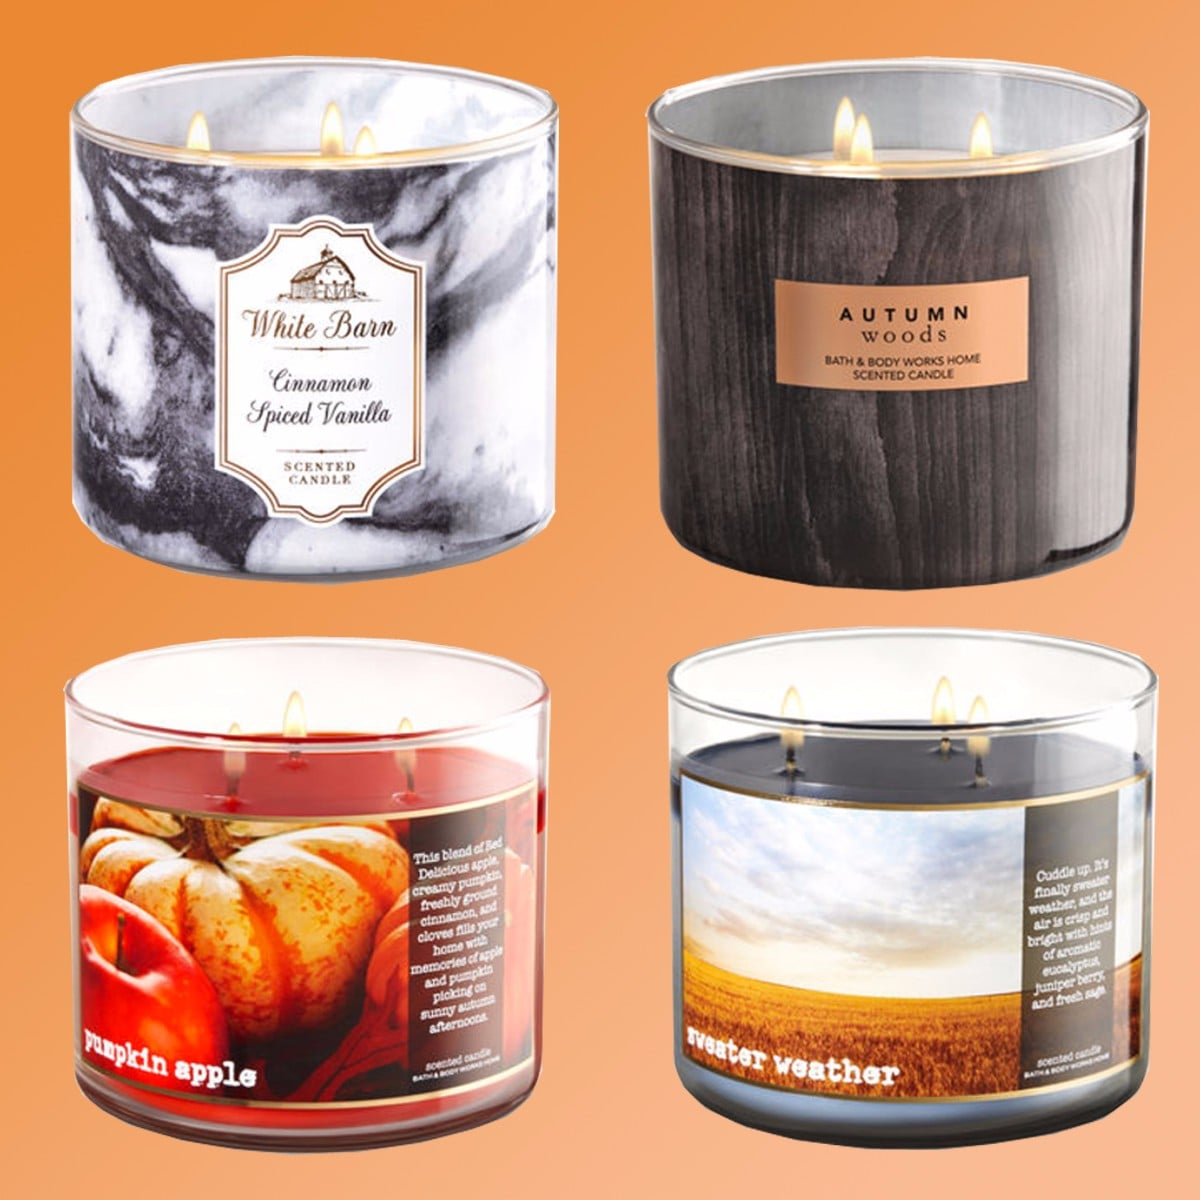 Bath and body works holiday scents - Bath And Body Works Holiday Scents 39